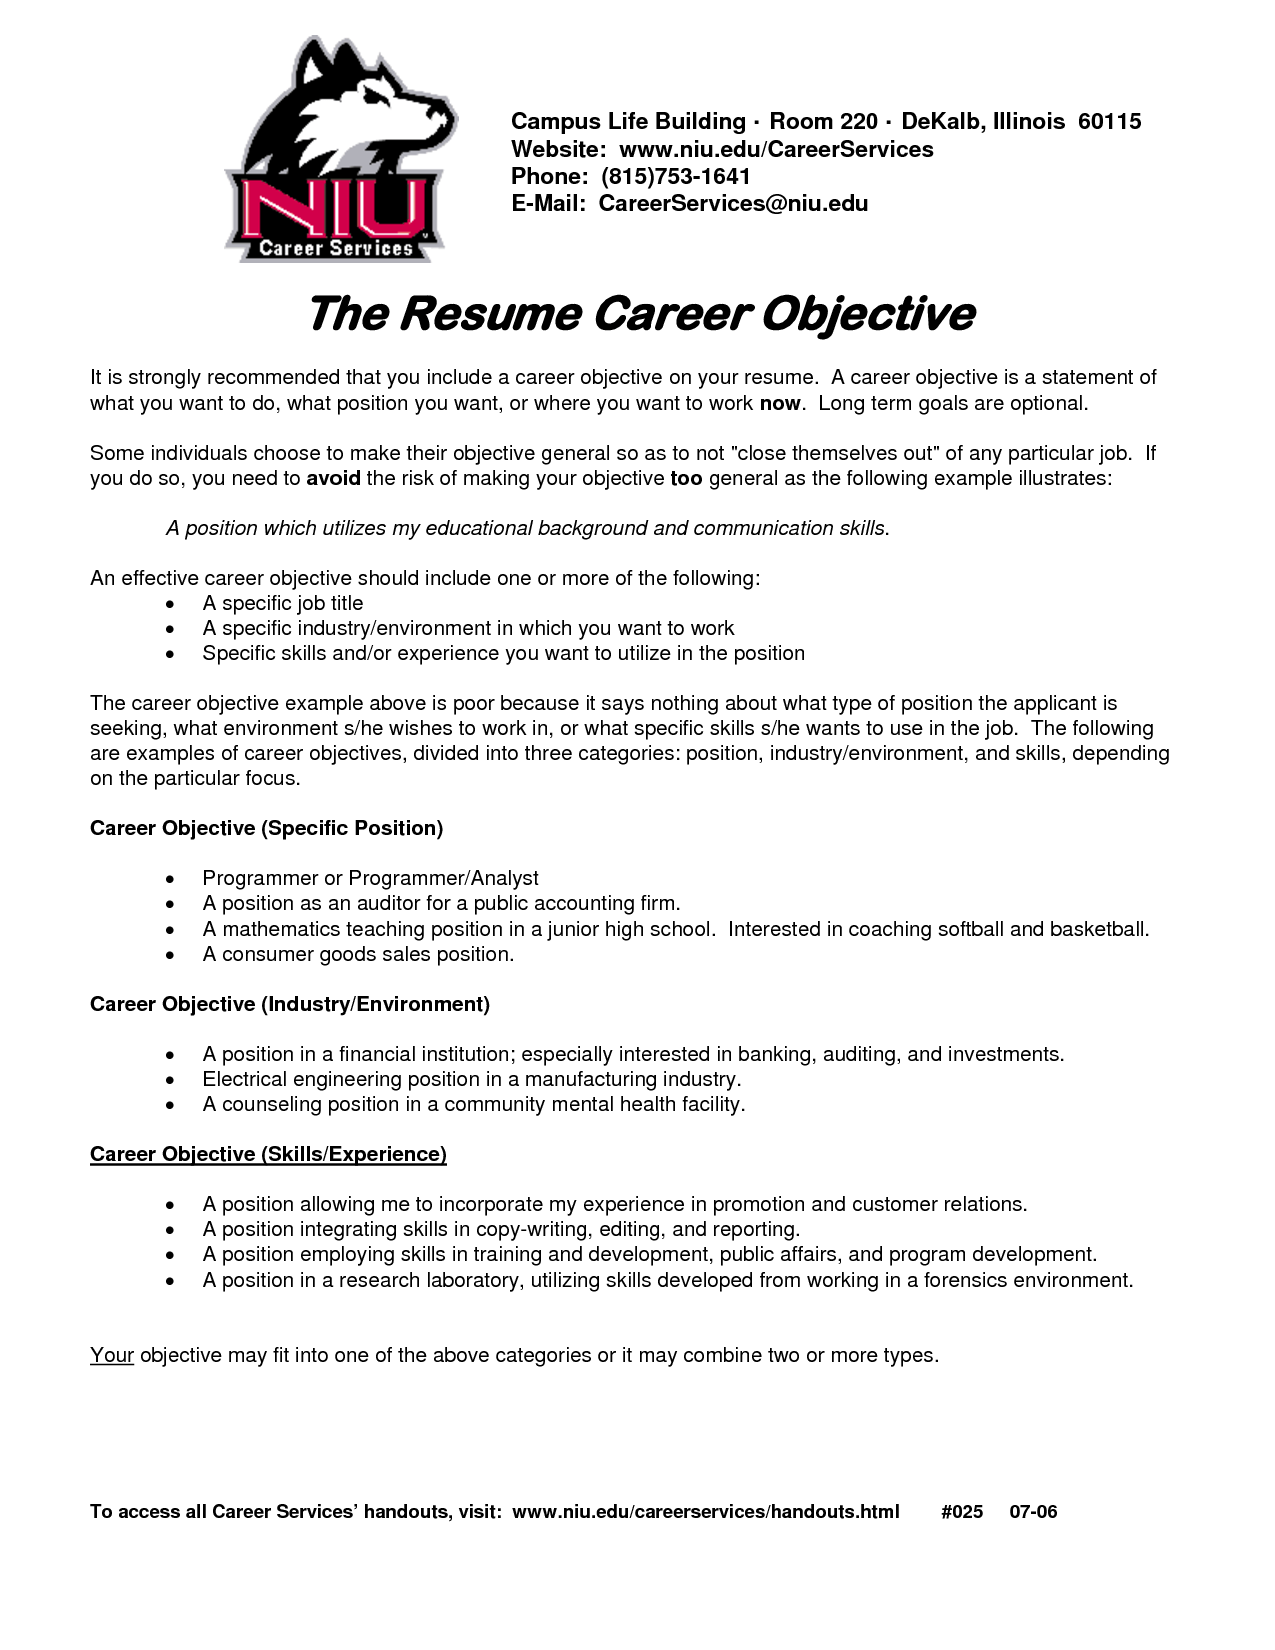 What To Put On The Objective Of A Resume Https Google Search Qobjective Resume Resume